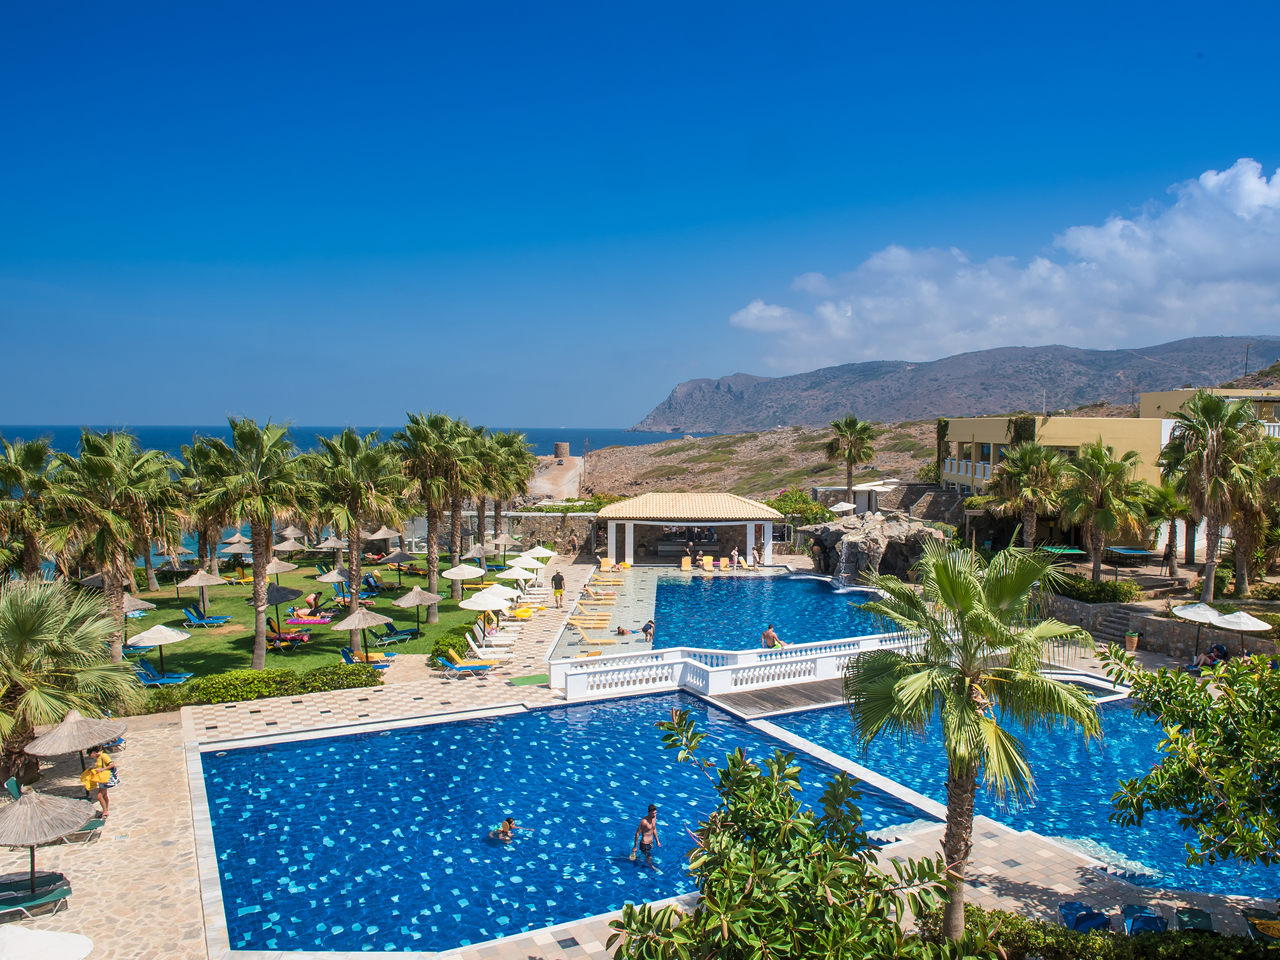 Radisson Blue Kreta